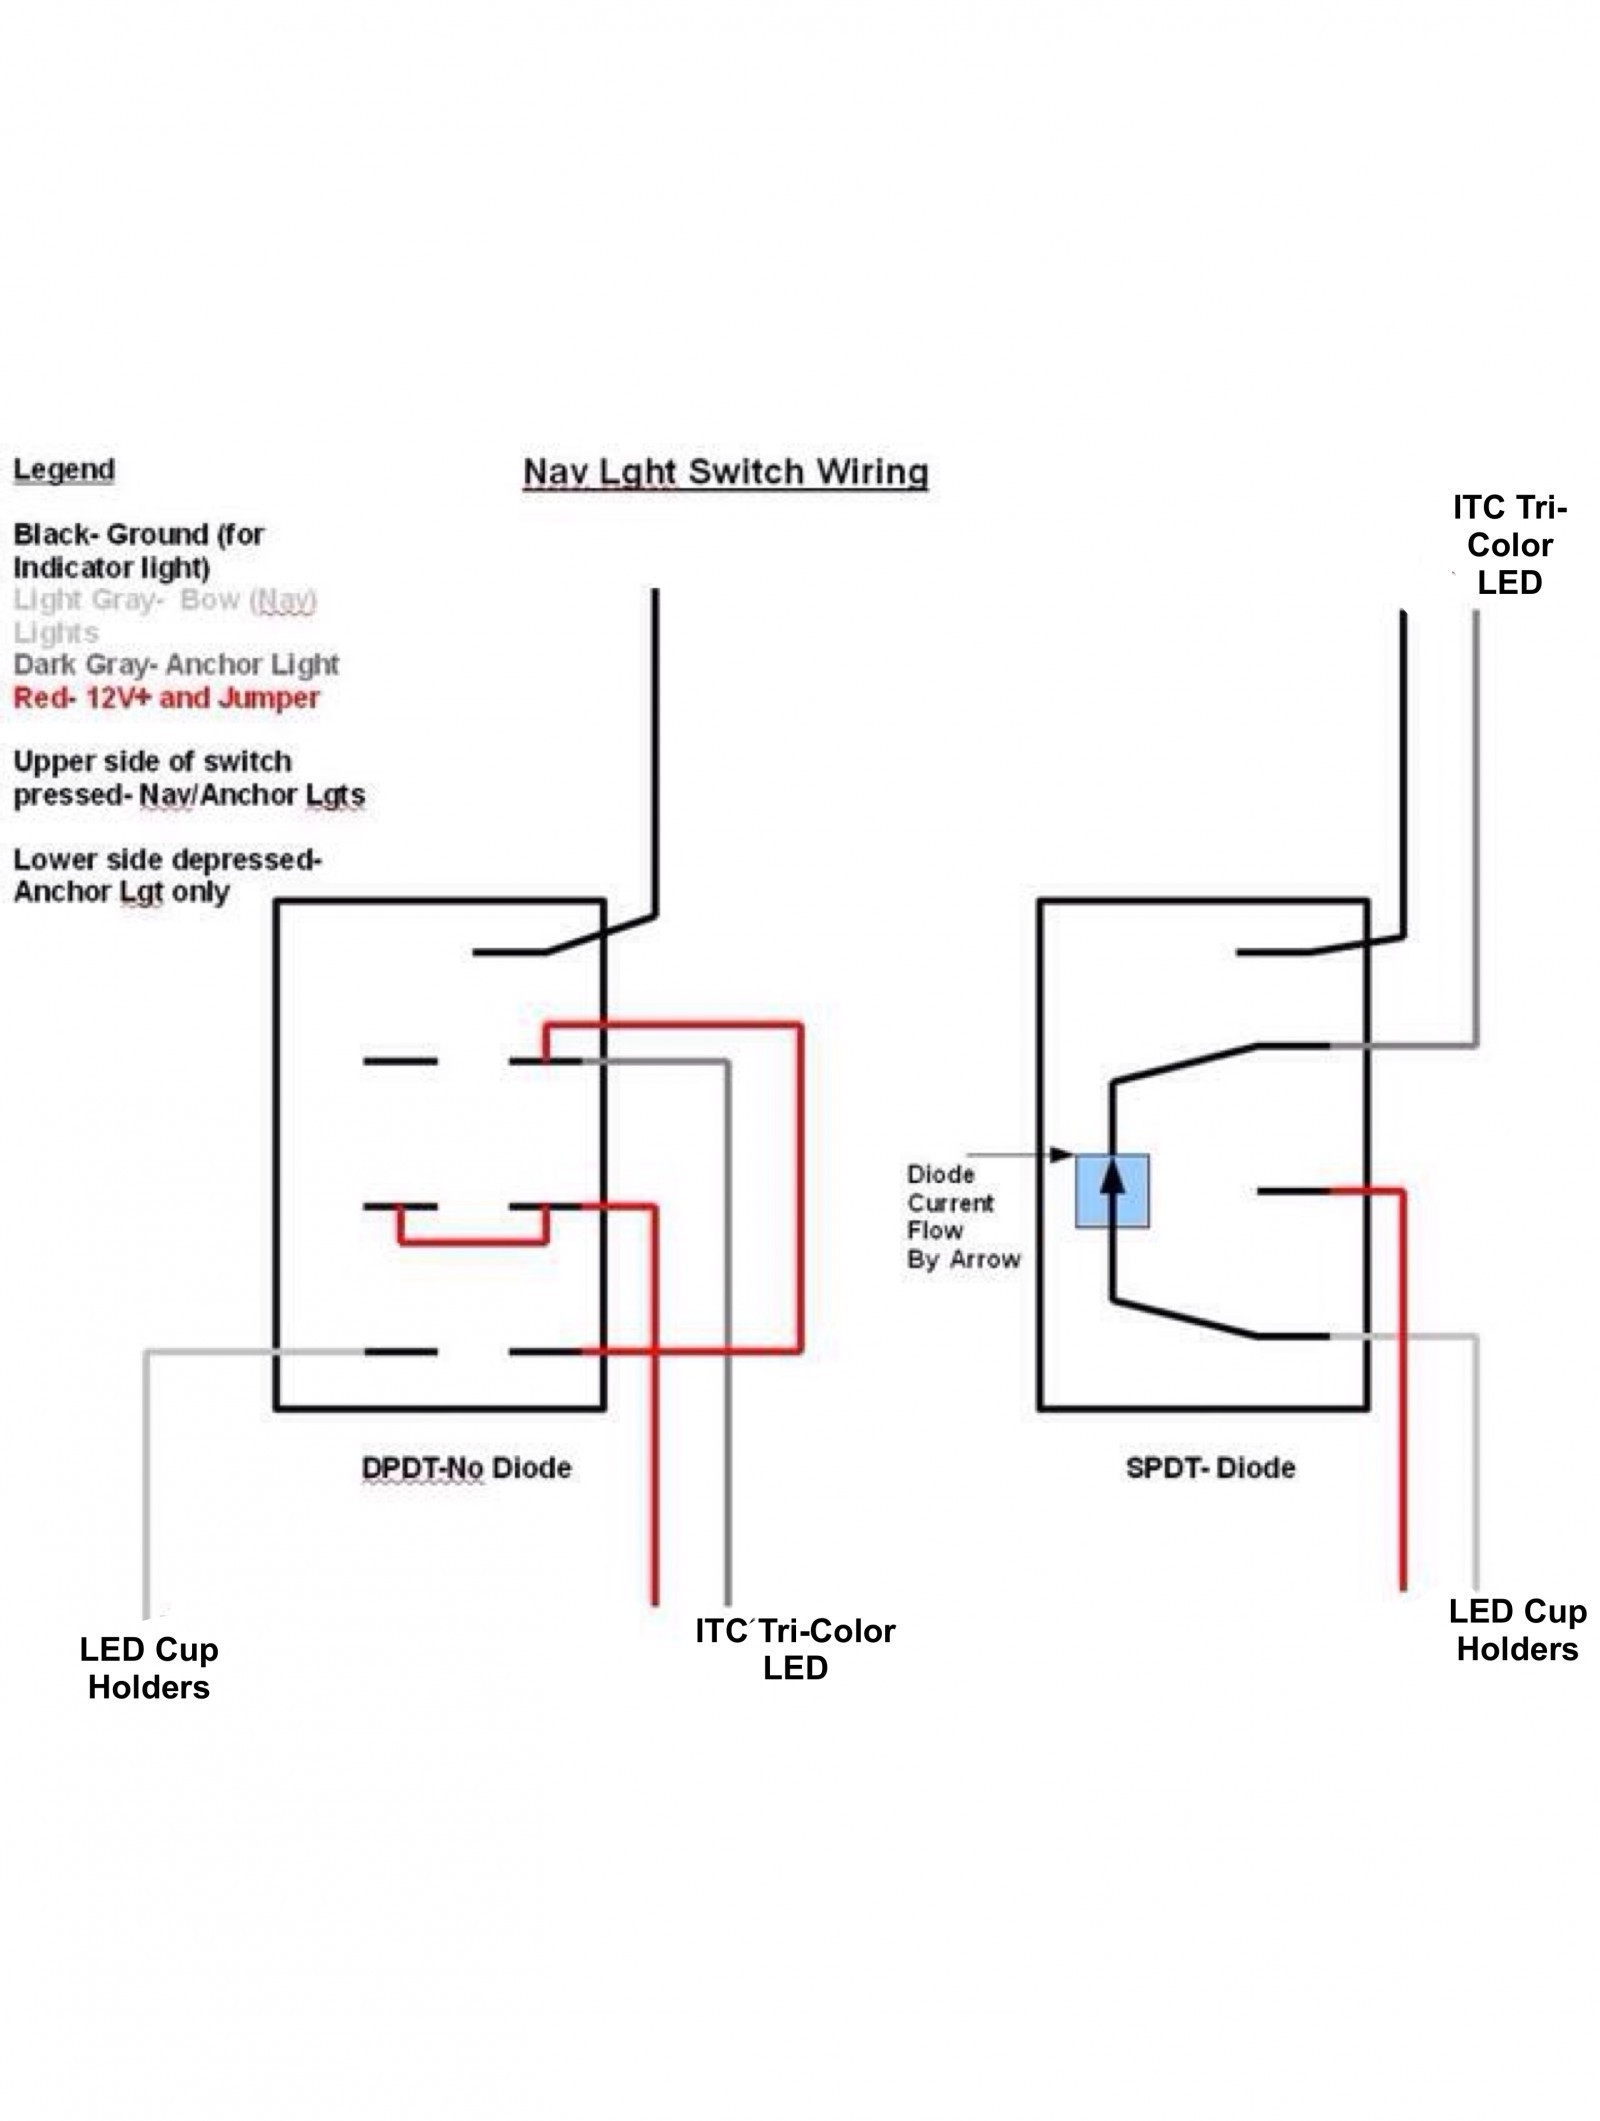 dual lite inverter wiring diagram Download-Heater Wiring Diagram Elegant Dual Lite Inverter Wiring Diagram Download 8-a